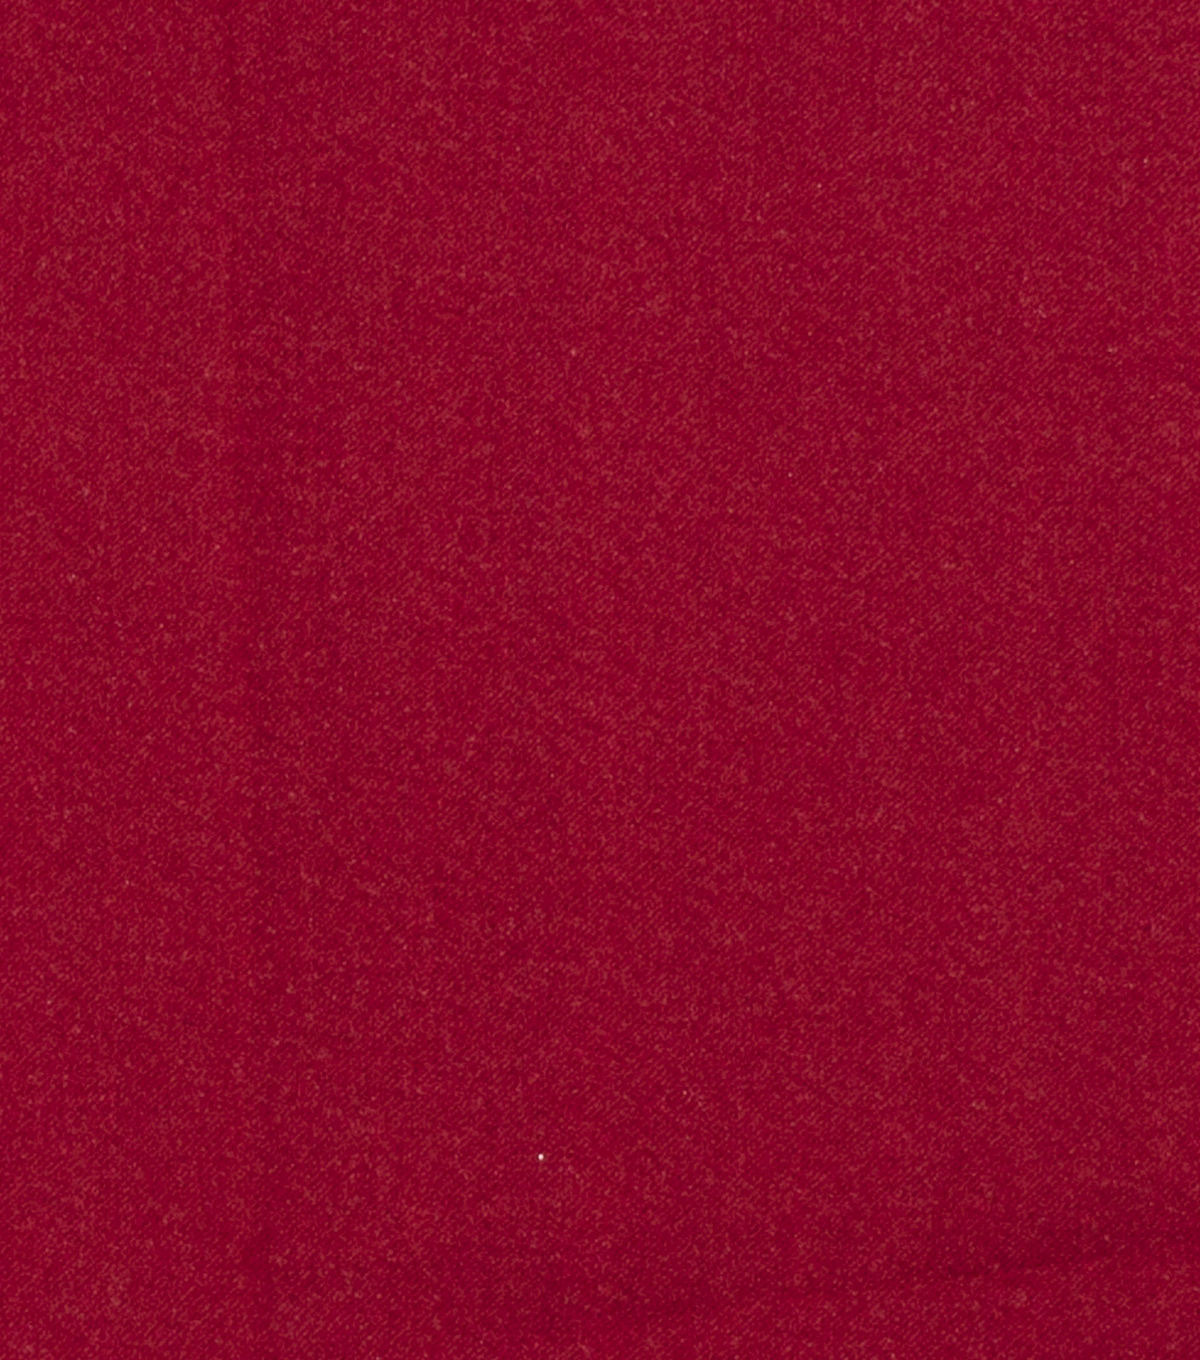 Home Decor 8\u0022x8\u0022 Fabric Swatch-Signature Series Couture Satin Brick